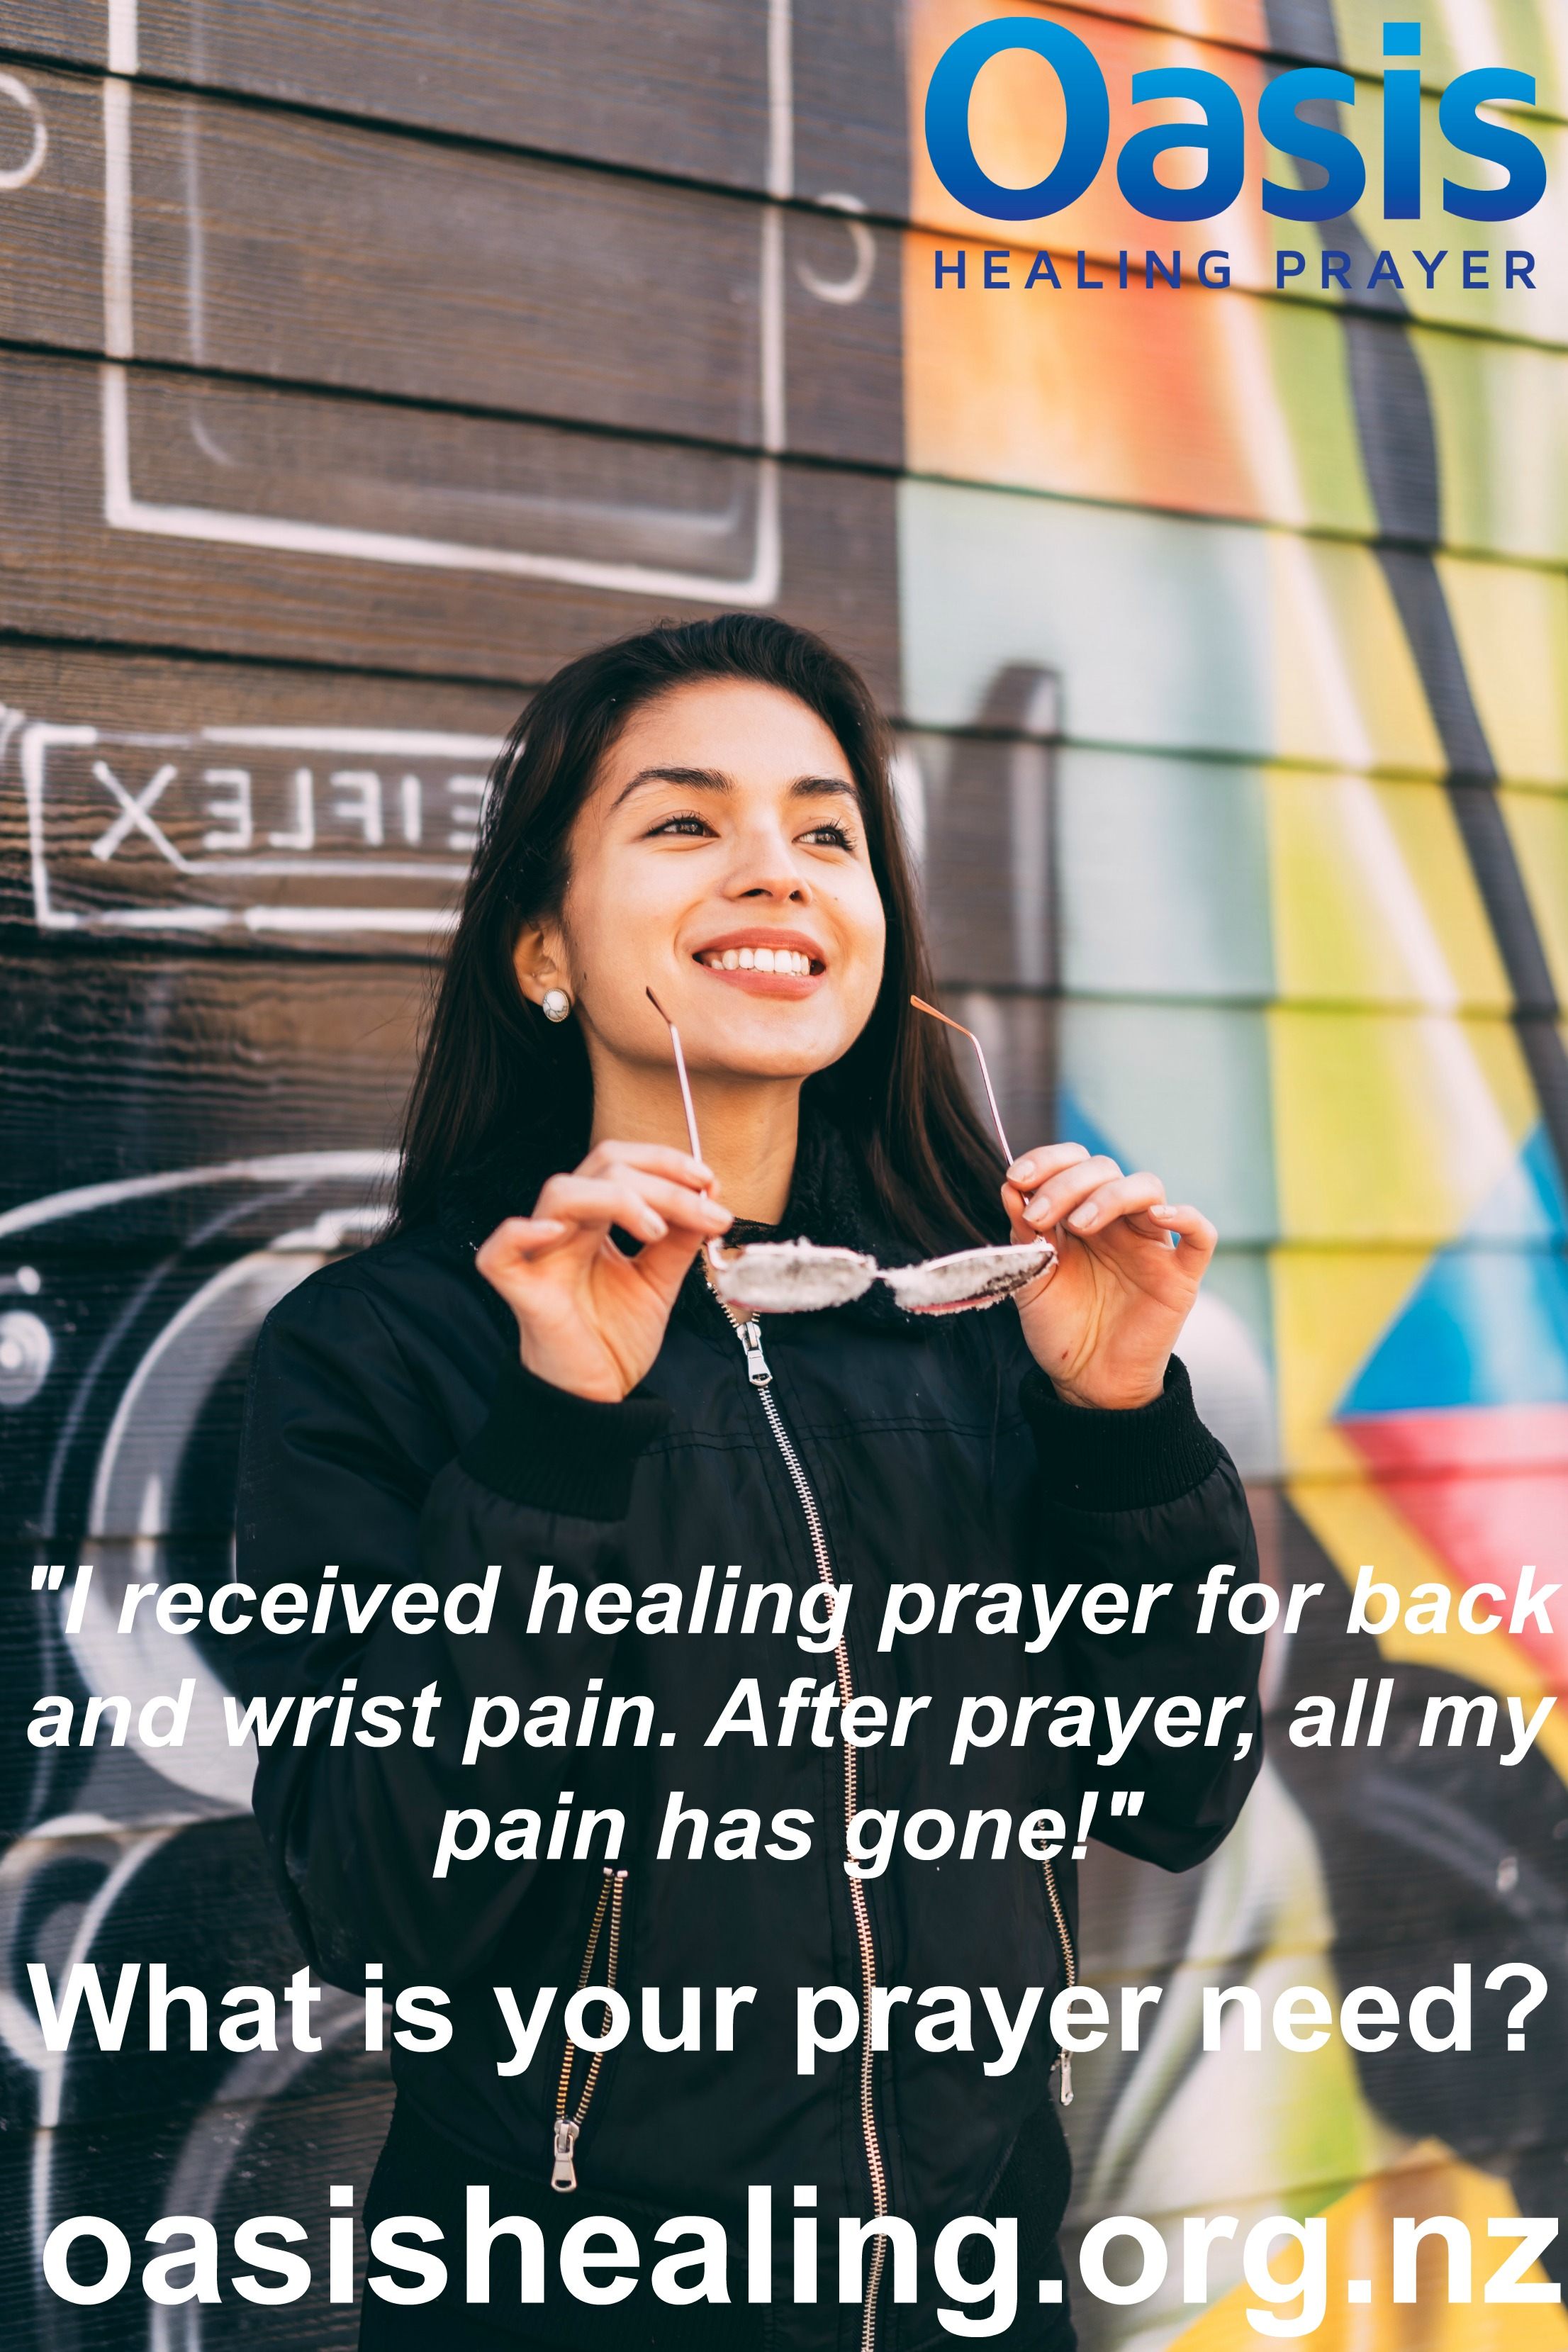 Oasis Healing Rooms-Testimonies from visitors to Oasis Healing Prayer